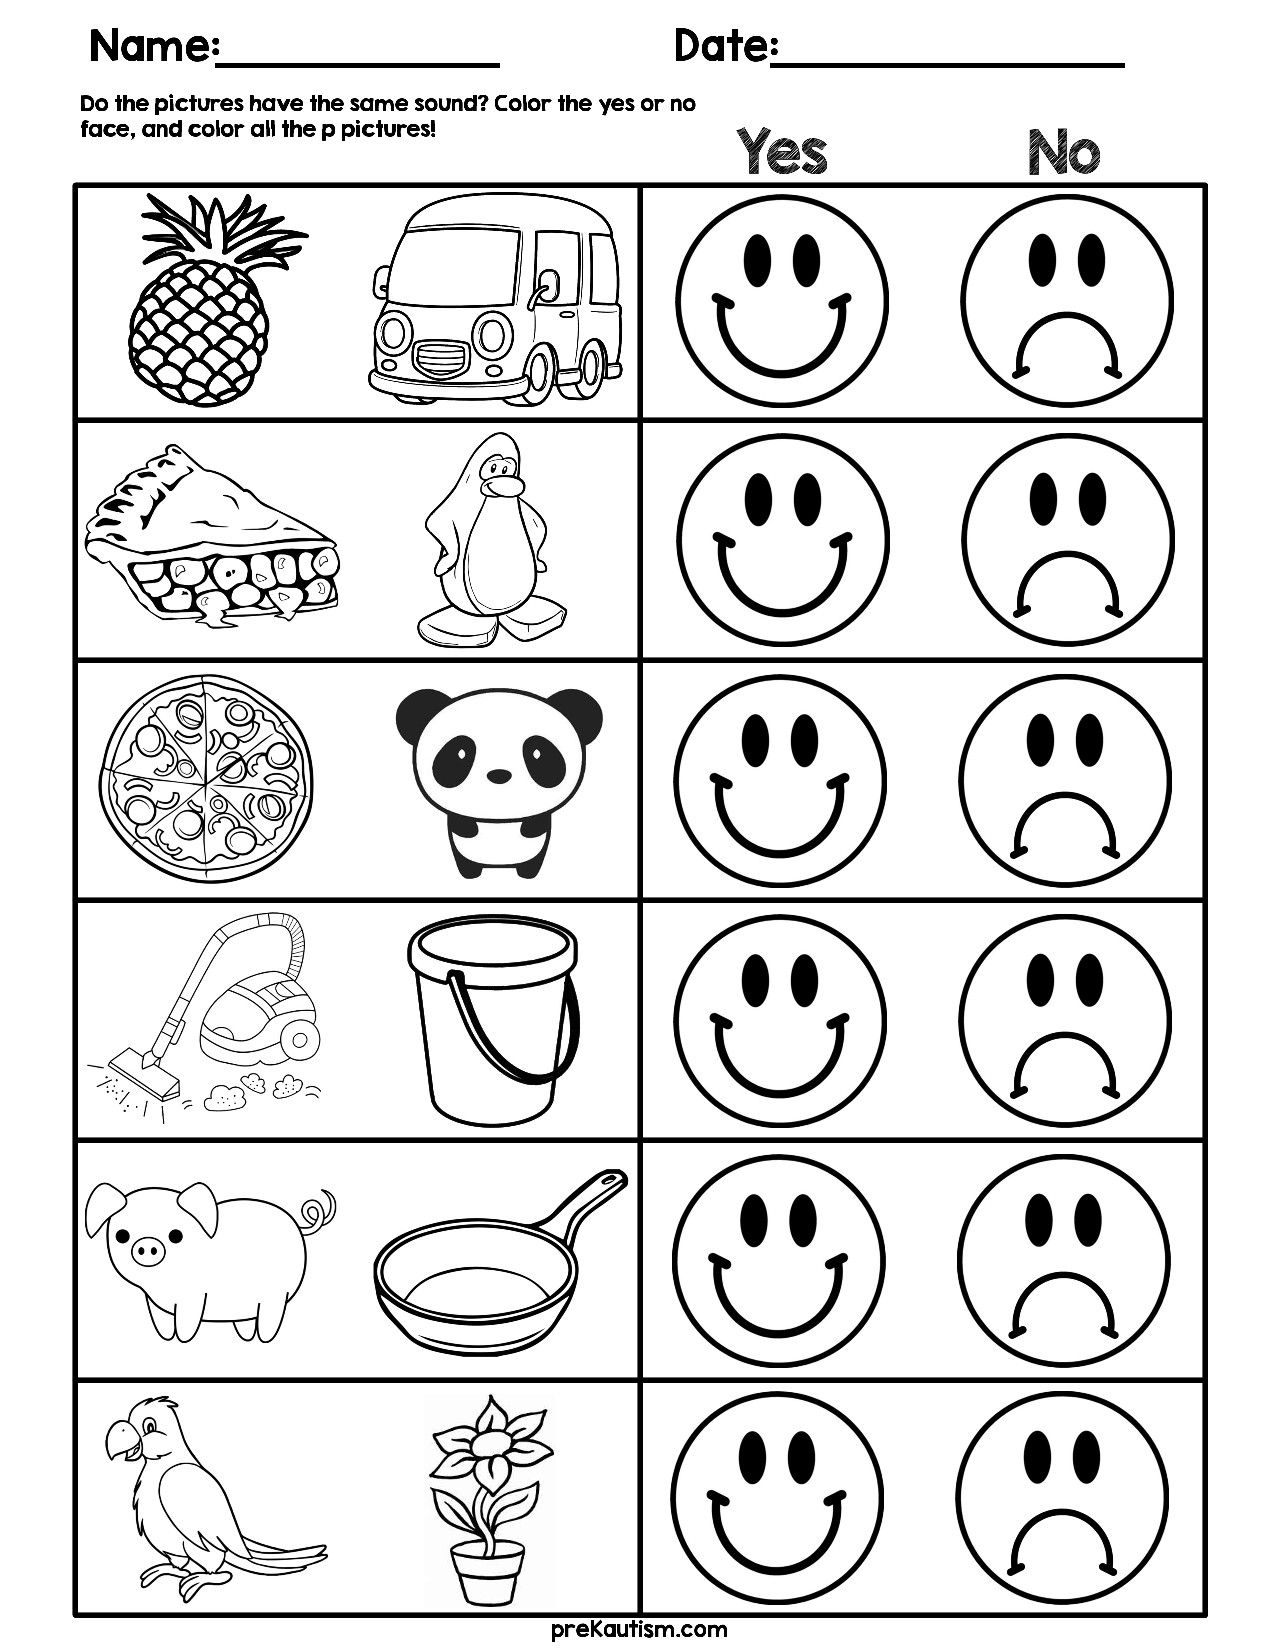 2 Initial Sound Matching Worksheets Consonant Sound Match